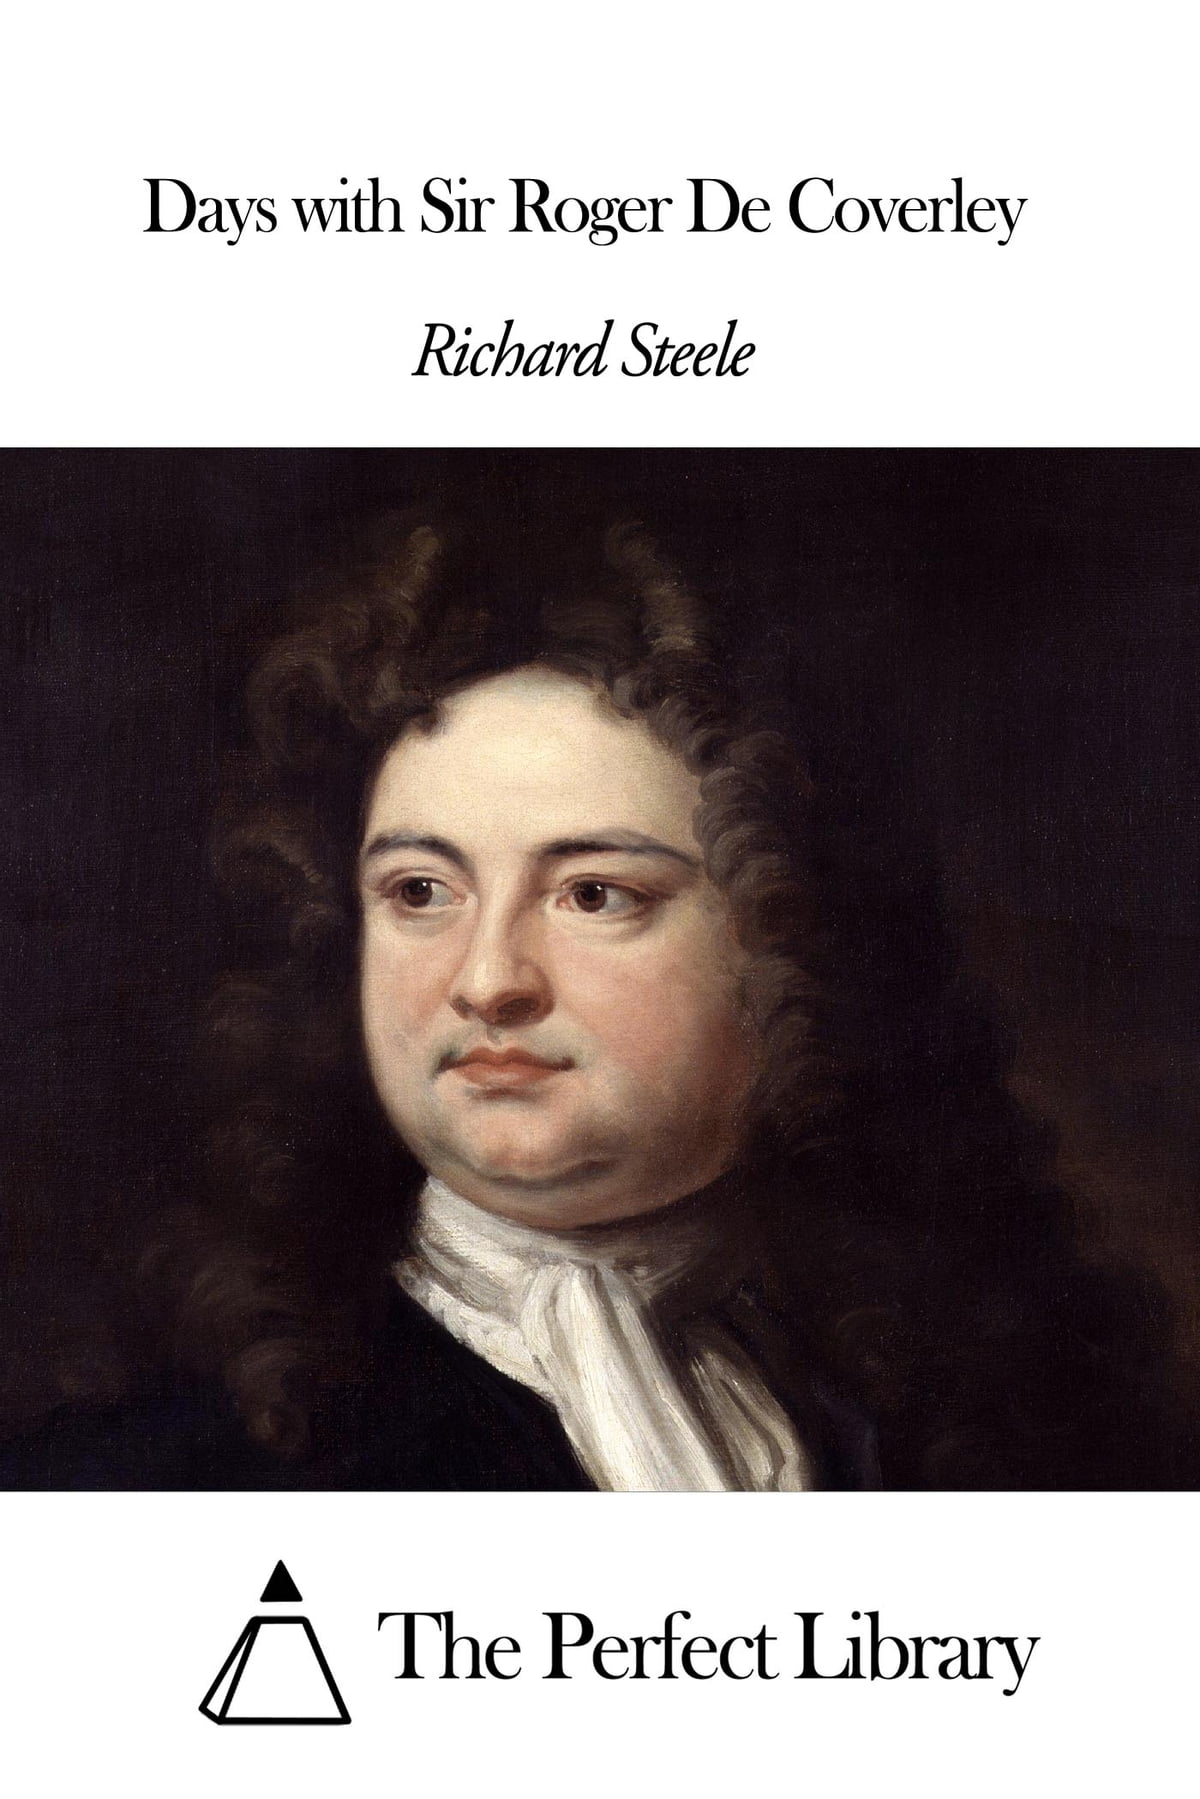 sir richard steele essay Richard steele introduces the character sir roger de coverley, a member of the spectator club thematic analysis sir roger de coverley, a member of the spectator club, is a character made up by richard steele.